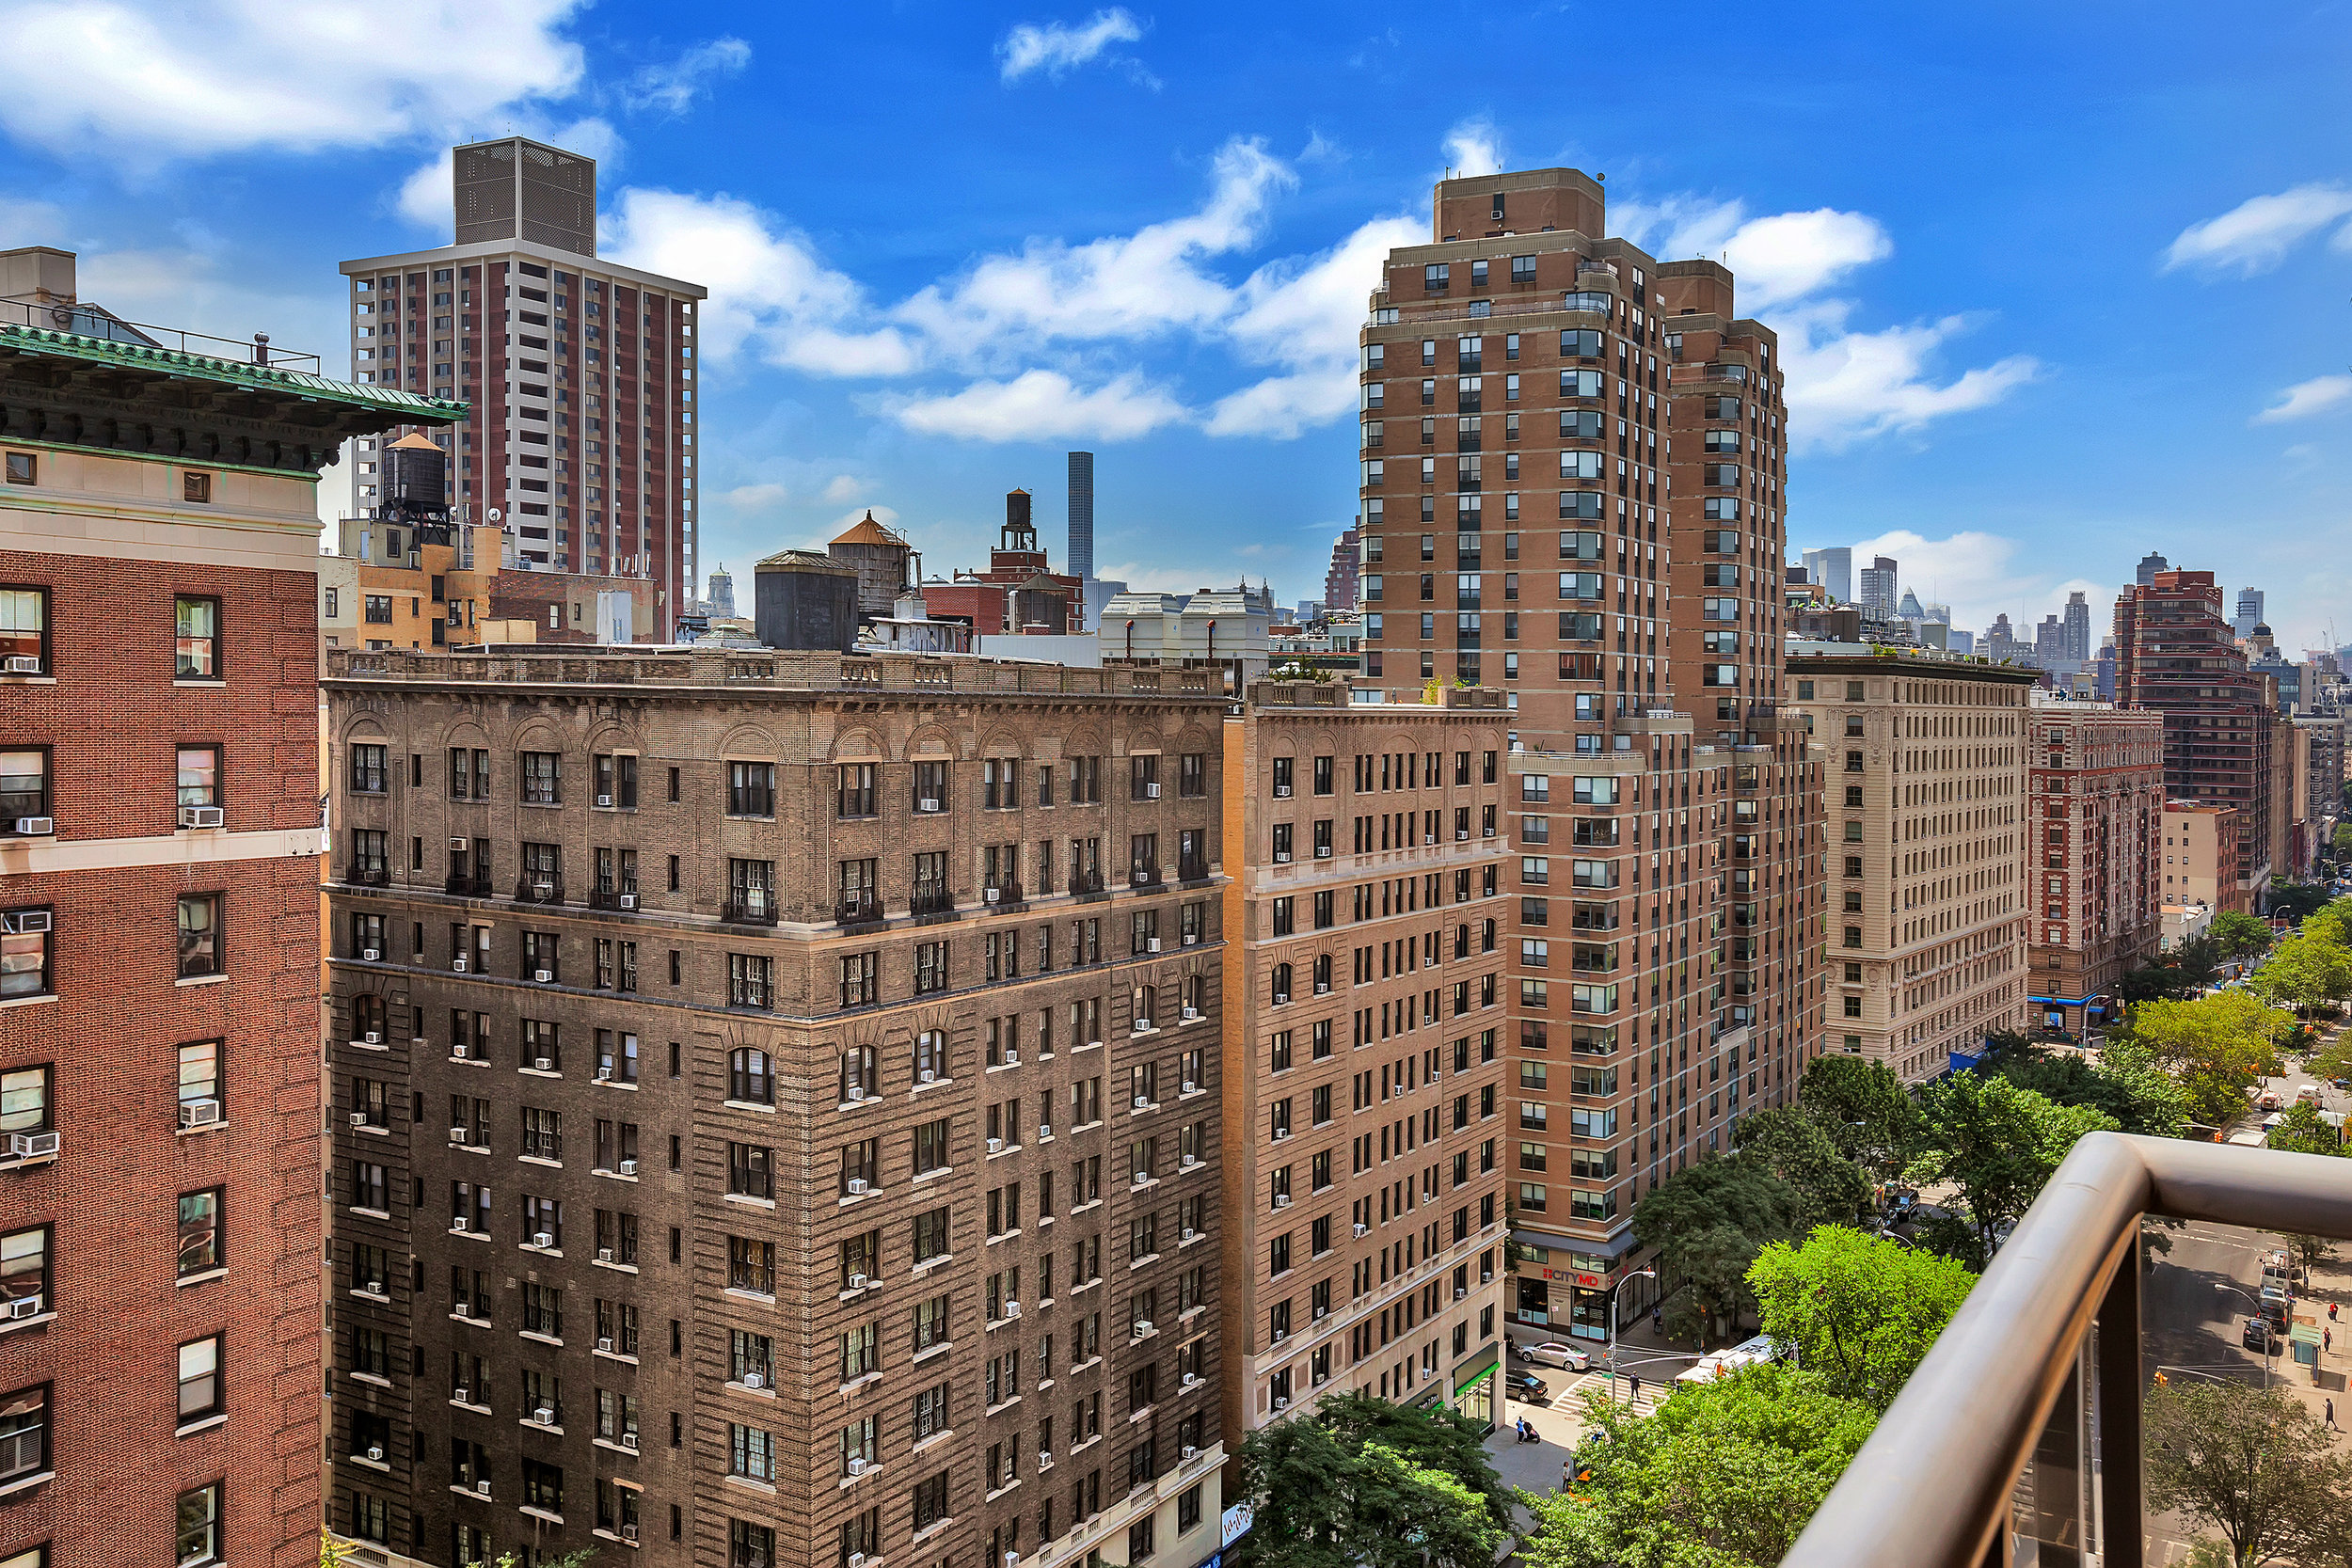 250West90thStreet17K_Dylan_Hildreth-Hoffman_DouglasElliman_Photography_28828782_high_res.jpg